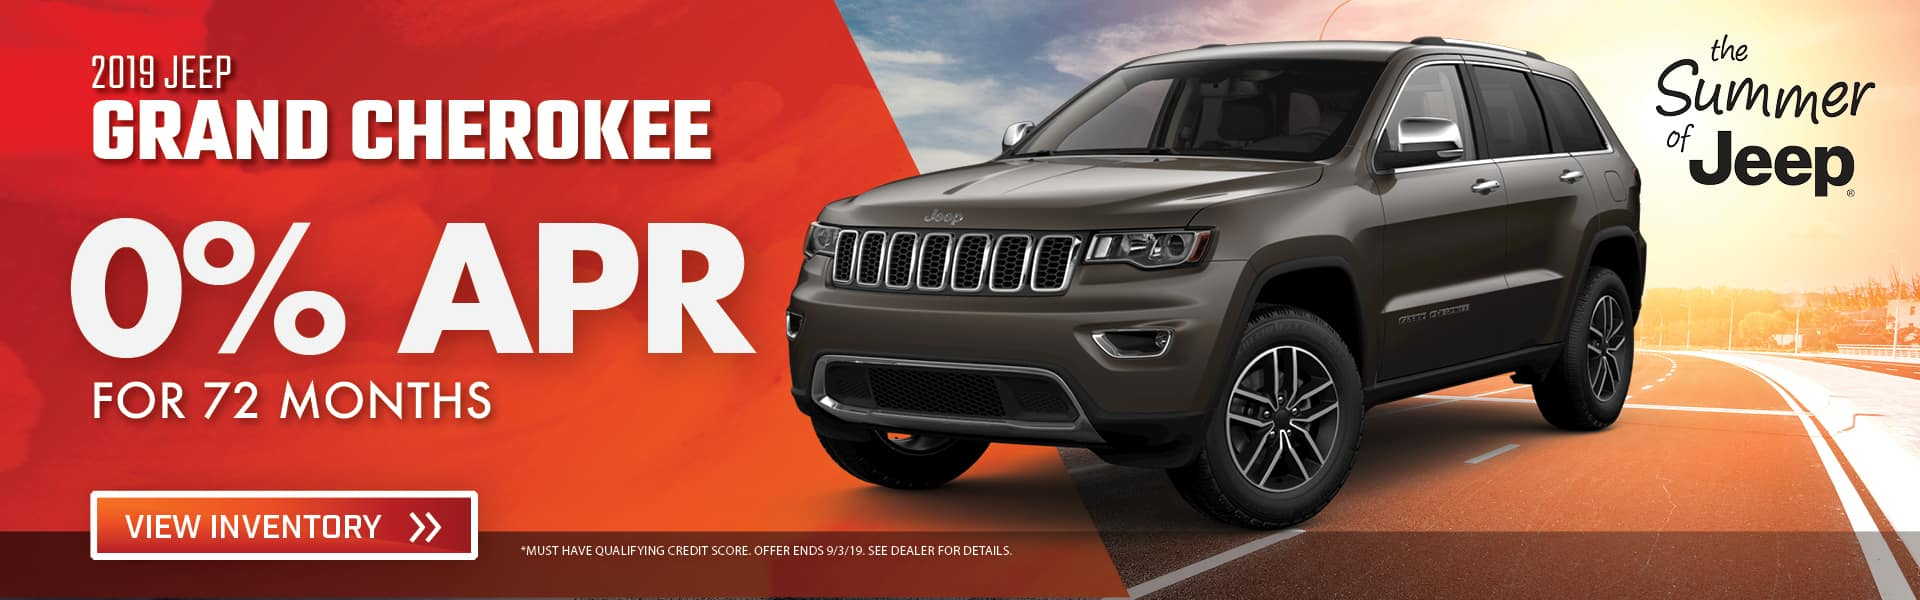 New JEEP Grand Cherokee for Sale in Pinckney, MI